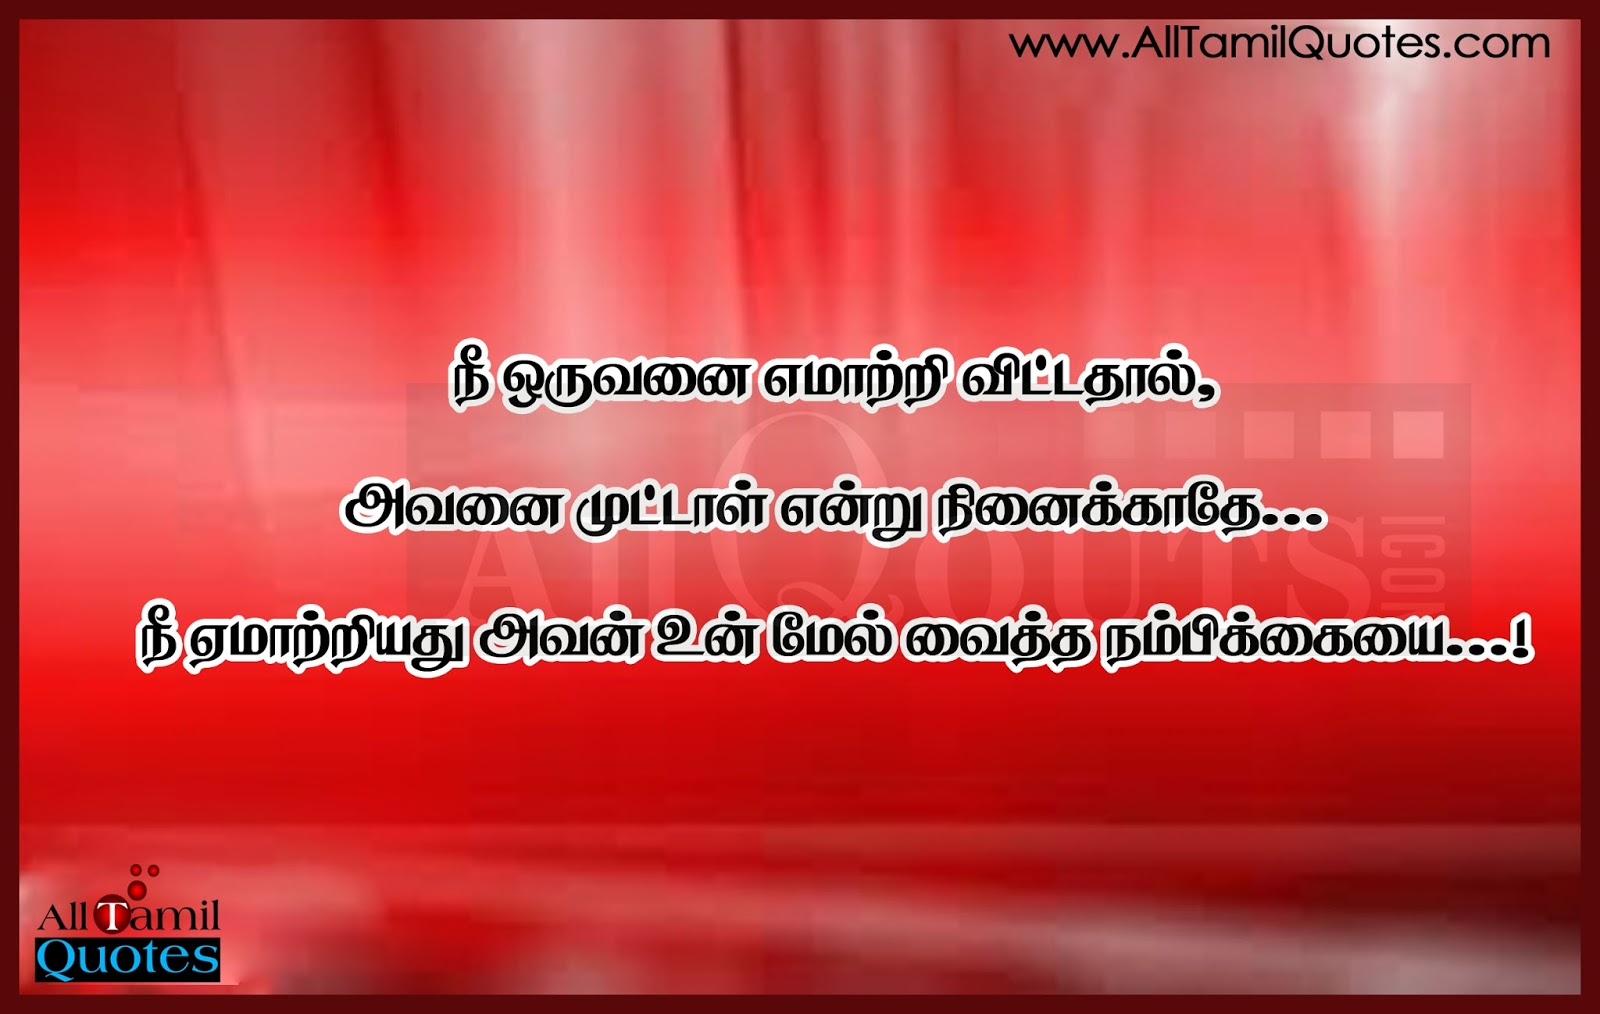 Life Proverbs Quotes Life Tamil Quotes And Thoughts